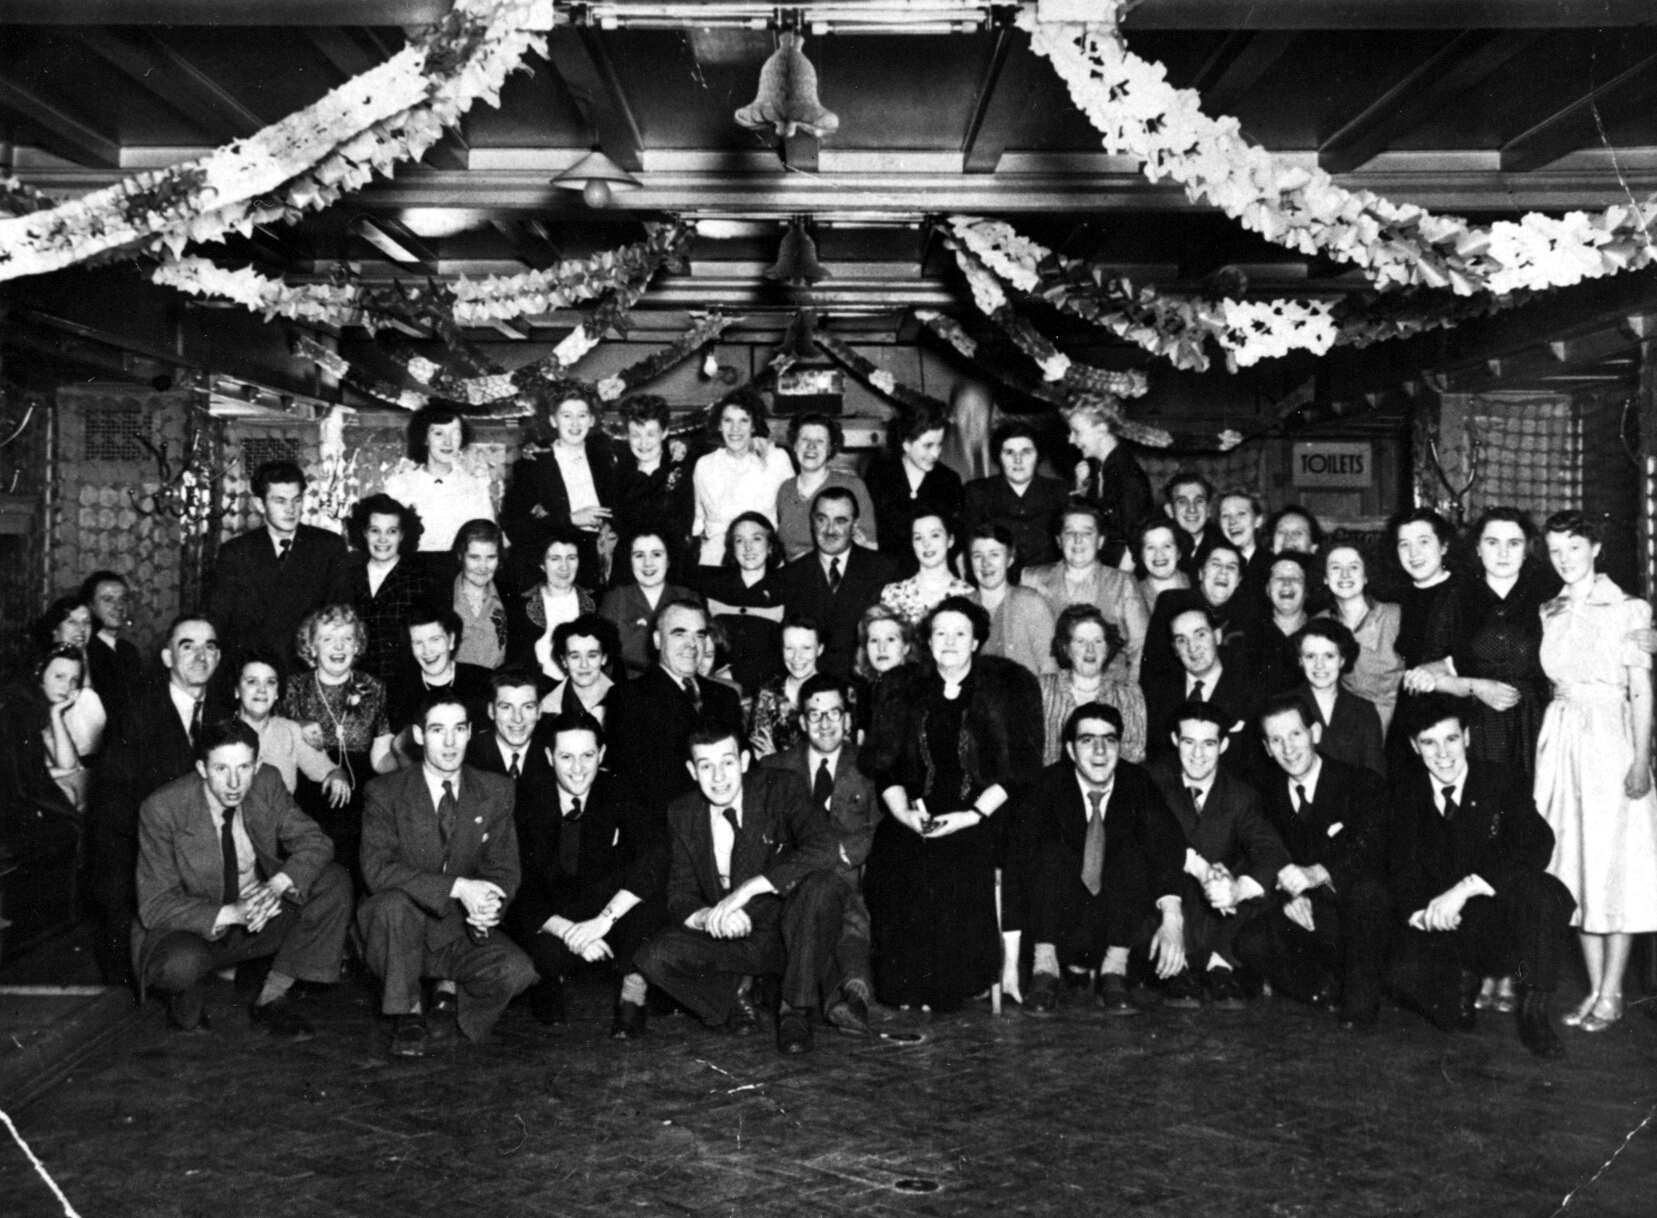 Christmas Function In The Oak Room Of The New Picture House, early 1950